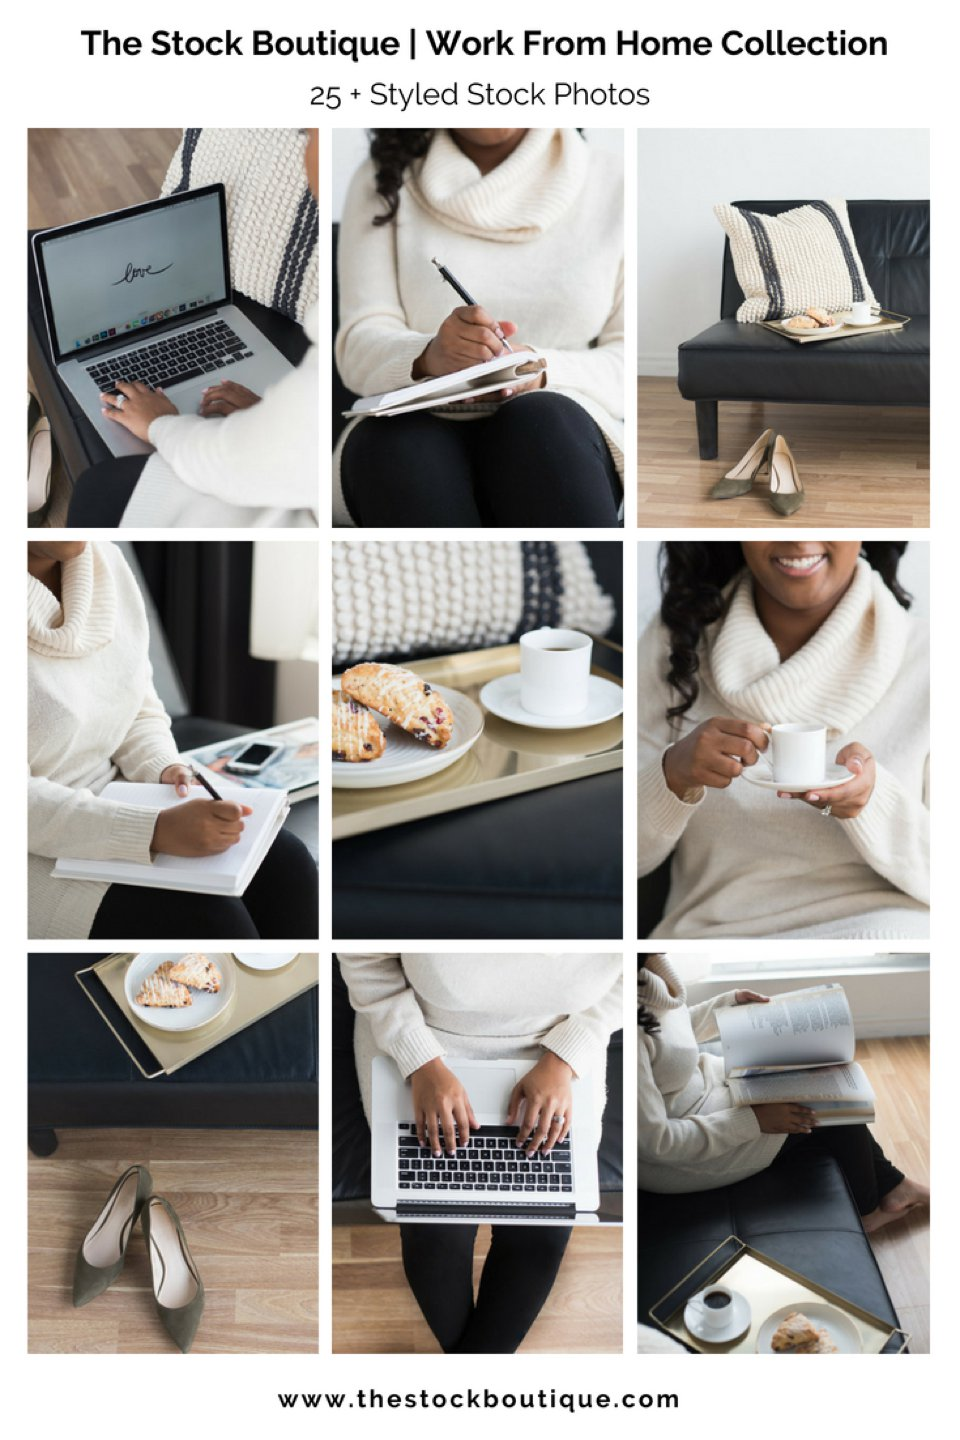 Work from home styled stock photography for female entrepreneurs. We giveaway a stock photo every month when you subscribe! www.thestockboutique.com   #stockphoto     #femaleentrepreneur     #girlboss